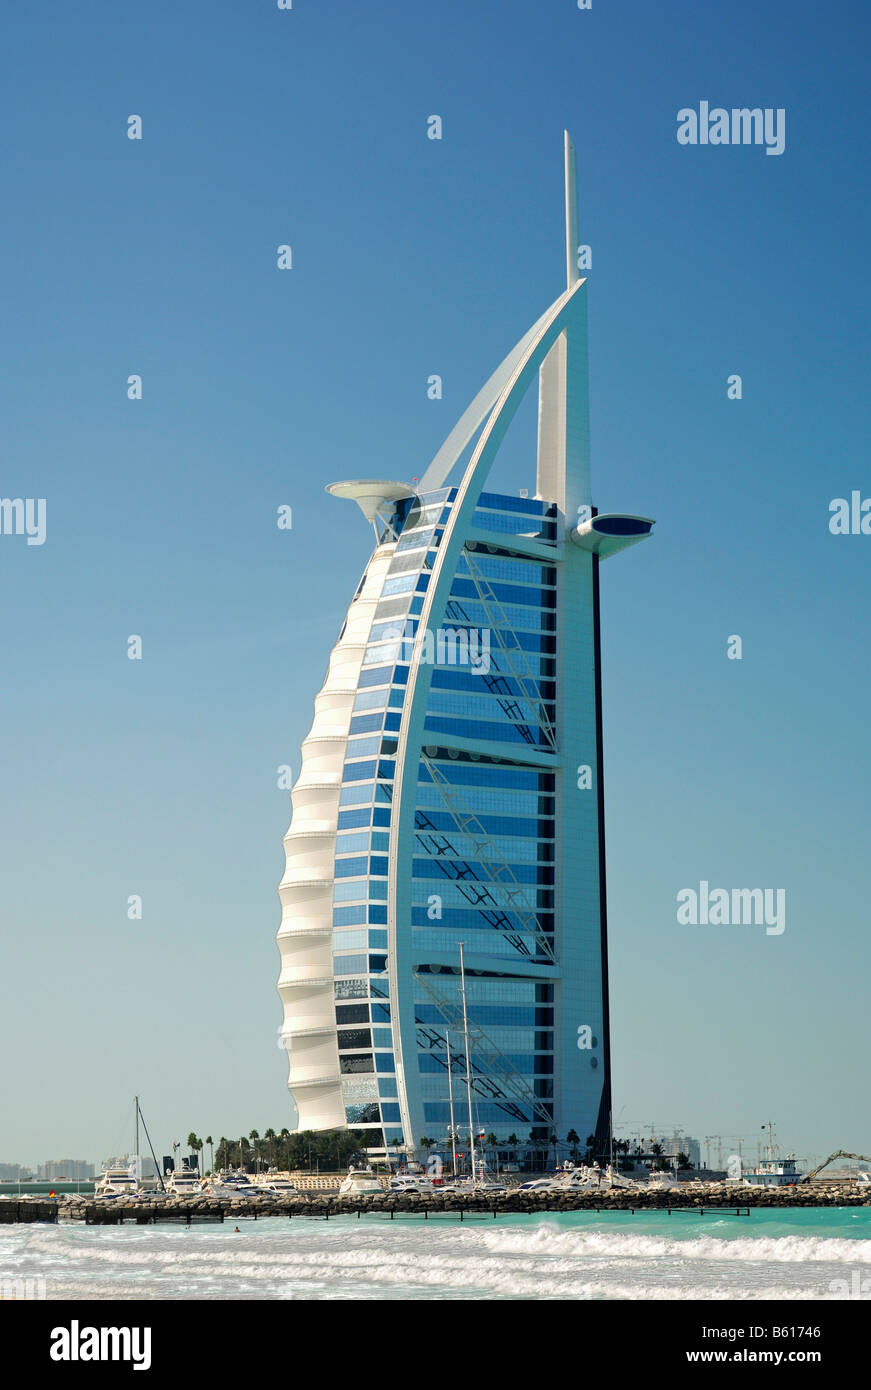 7 star burj al arab hotel beside the sea dubai united for Dubai top hotels 7 star